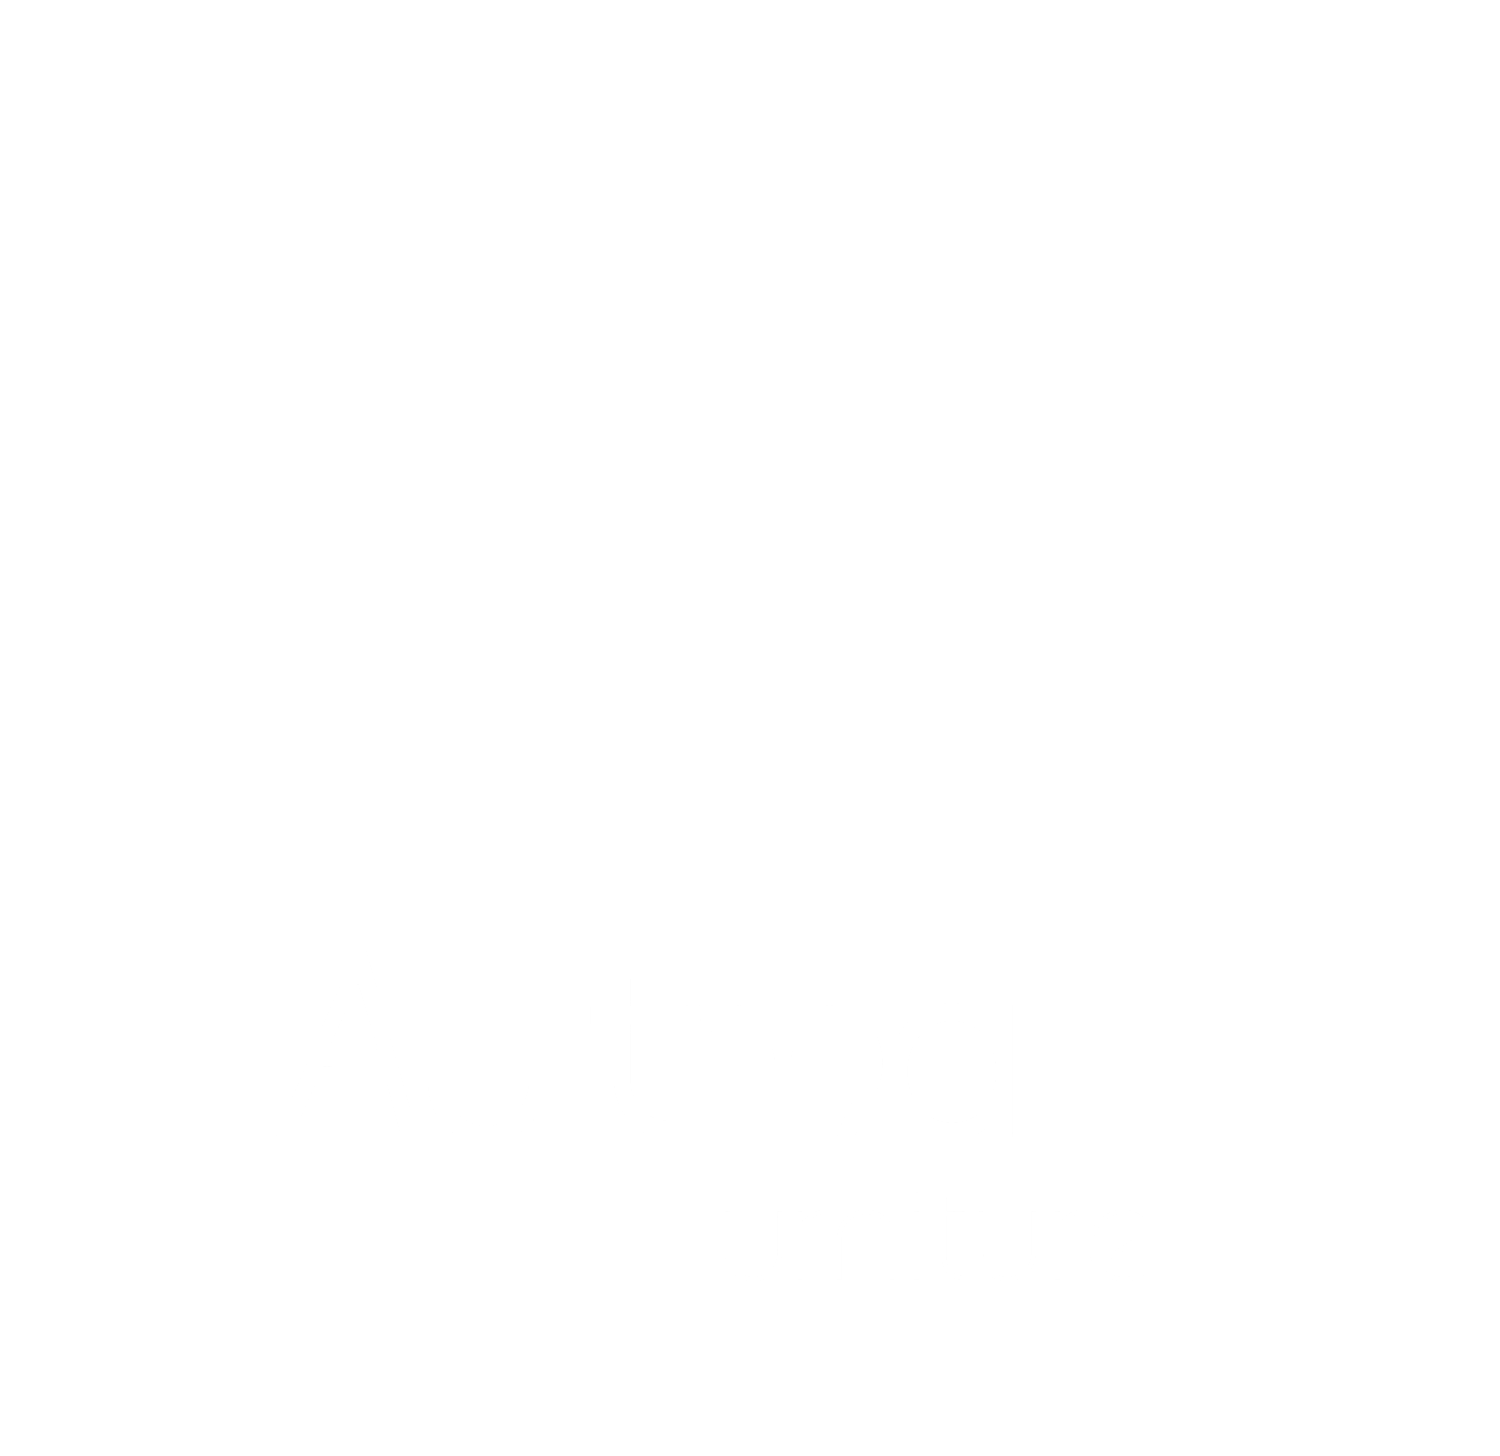 Greg Aultman Furniture